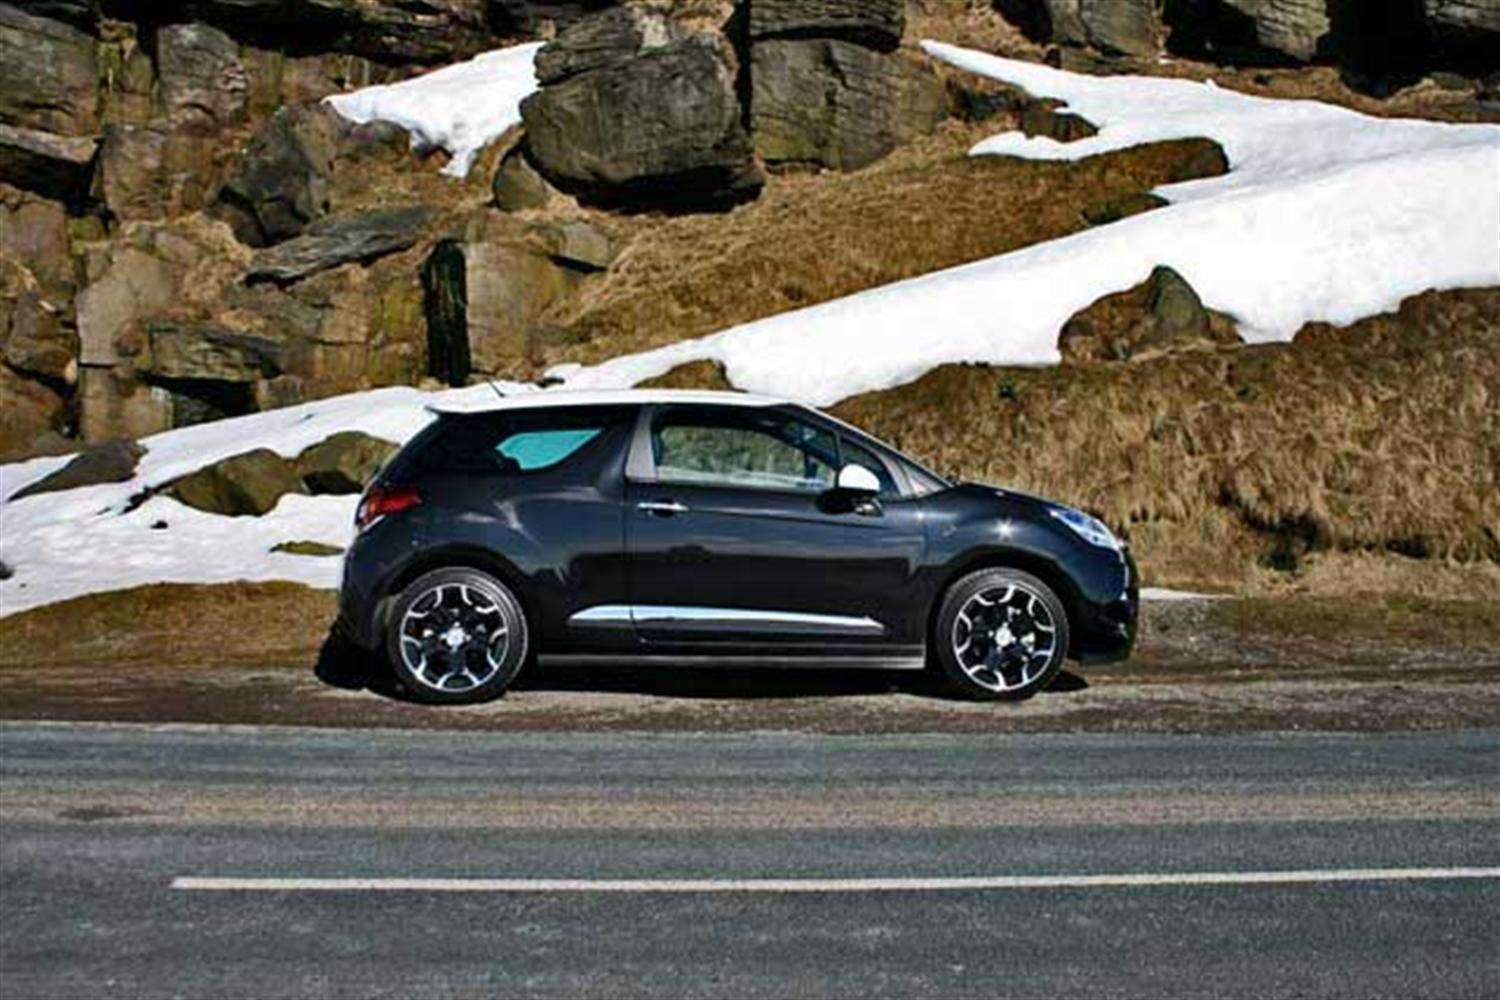 Perrys honoured in Citroen after sales list